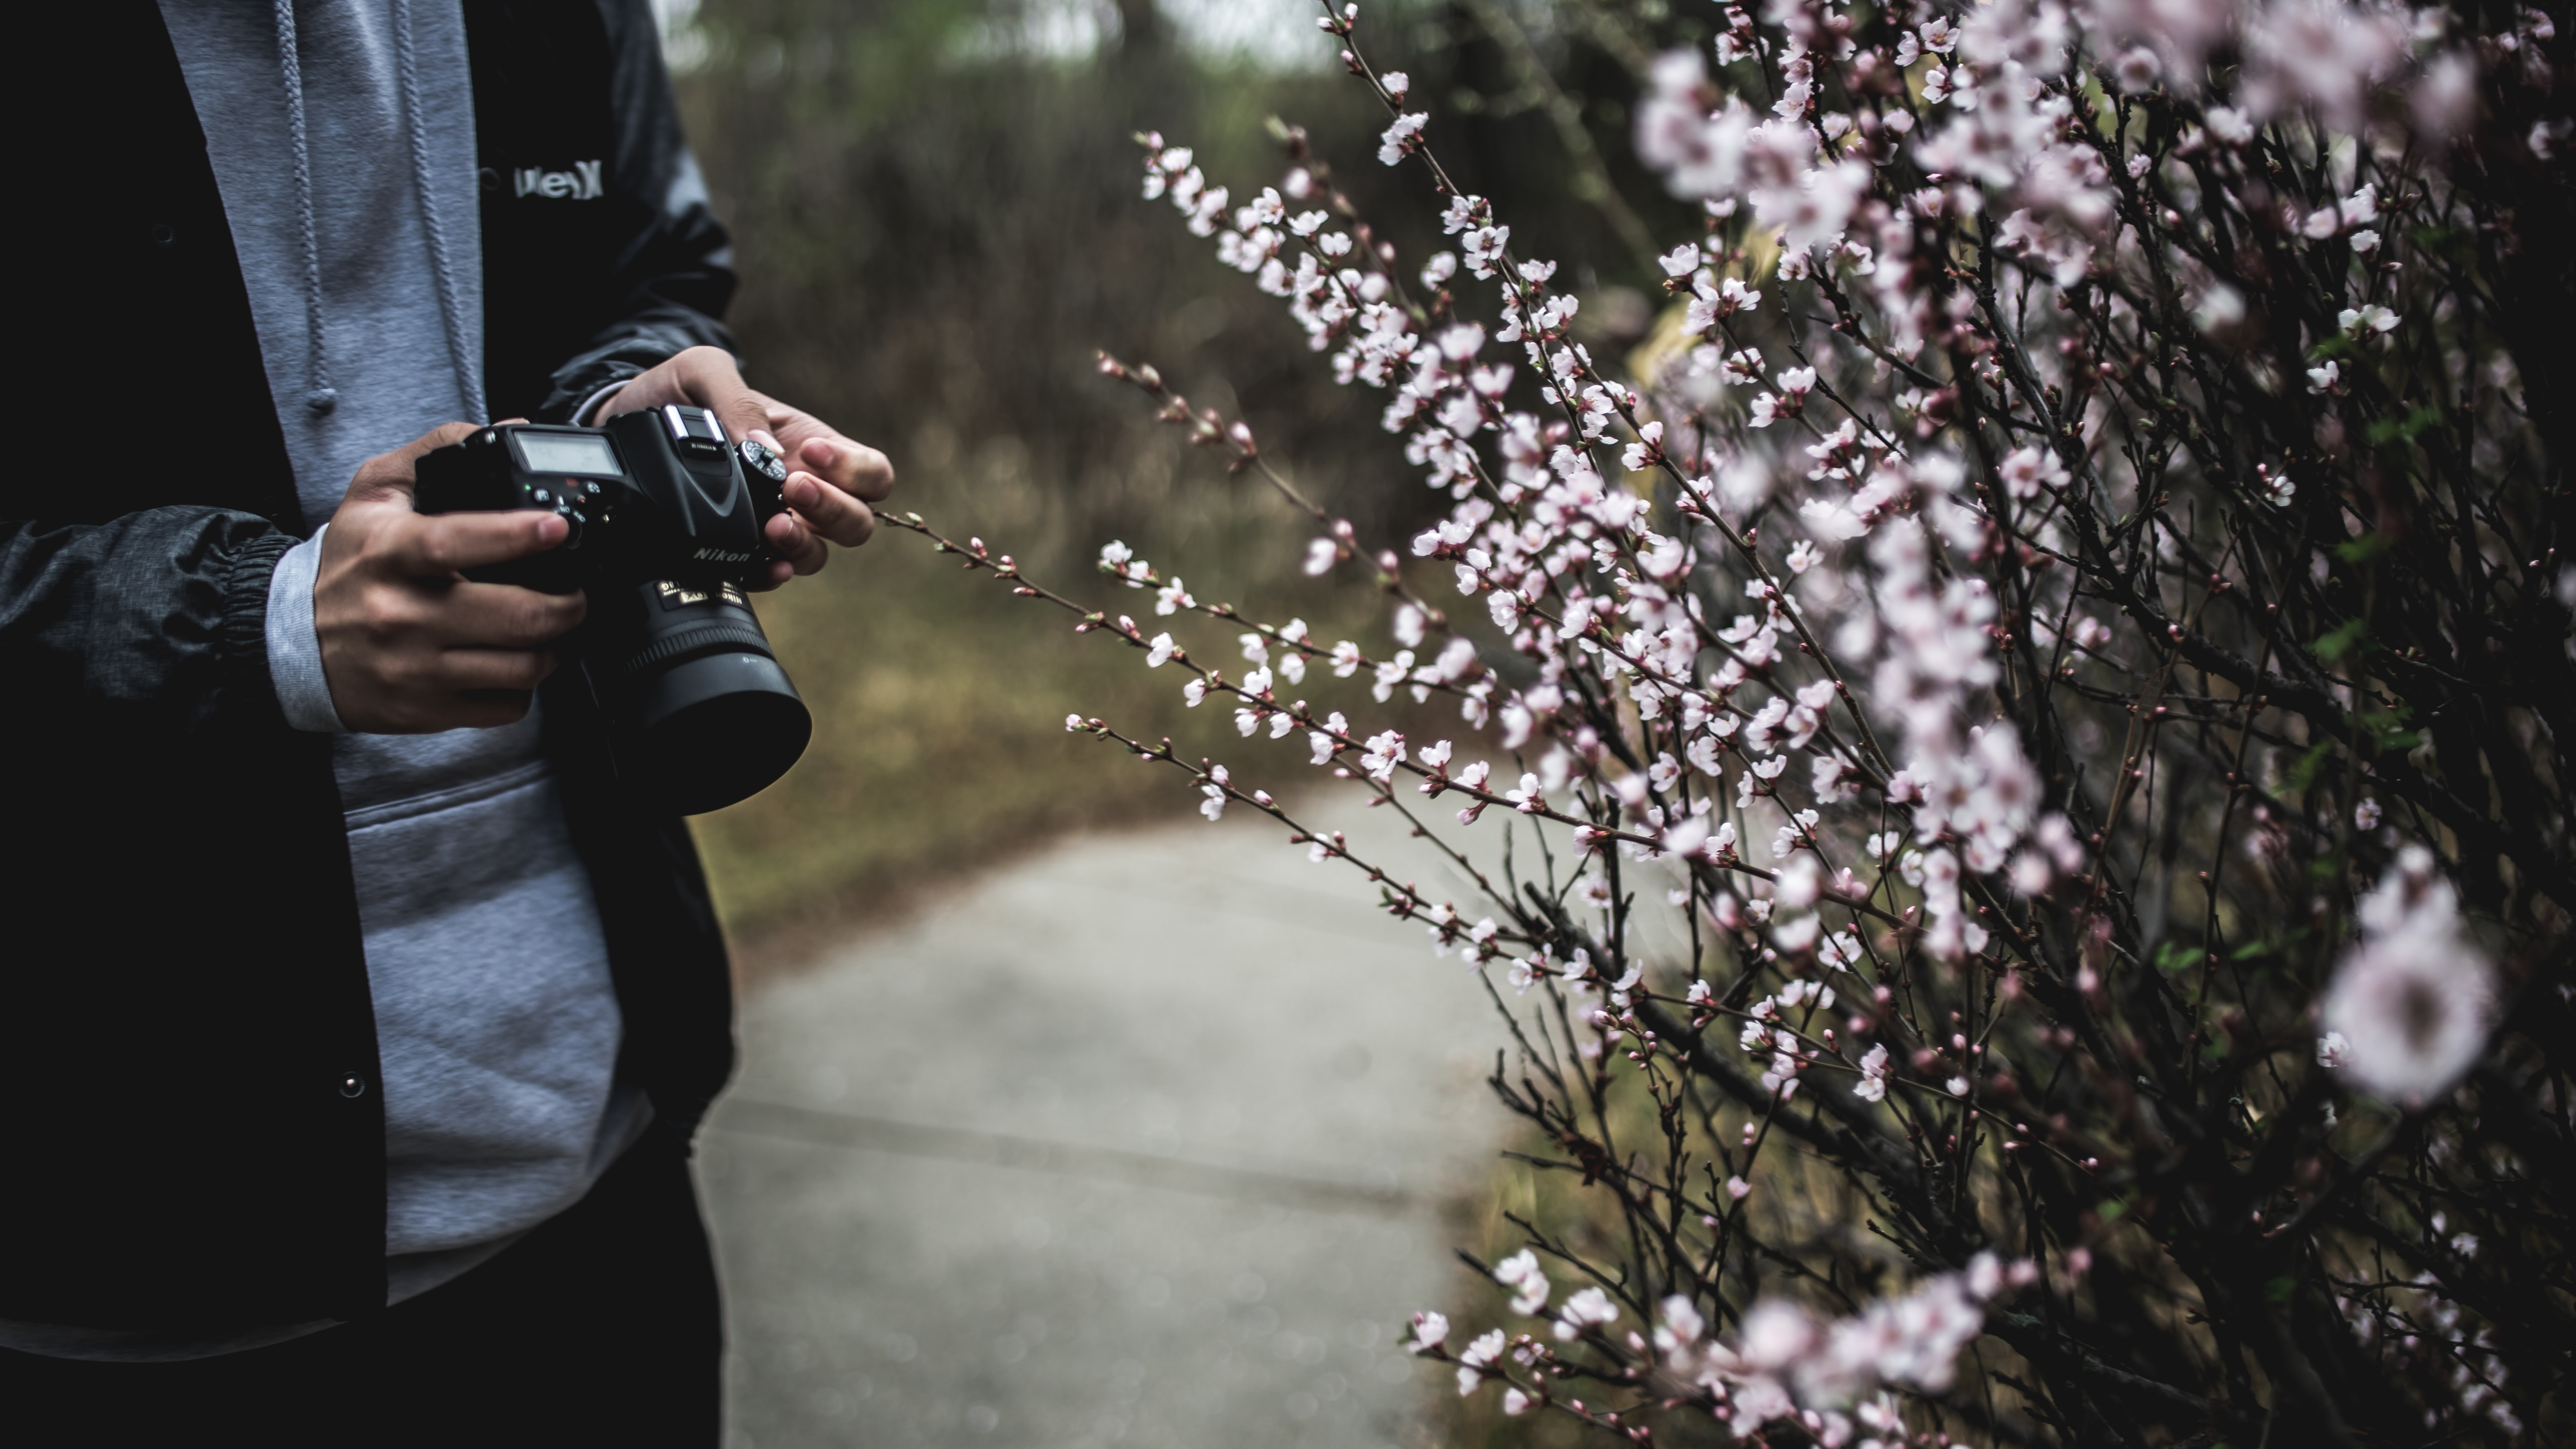 A man with a DSLR camera next to a bush covered with small white flowers